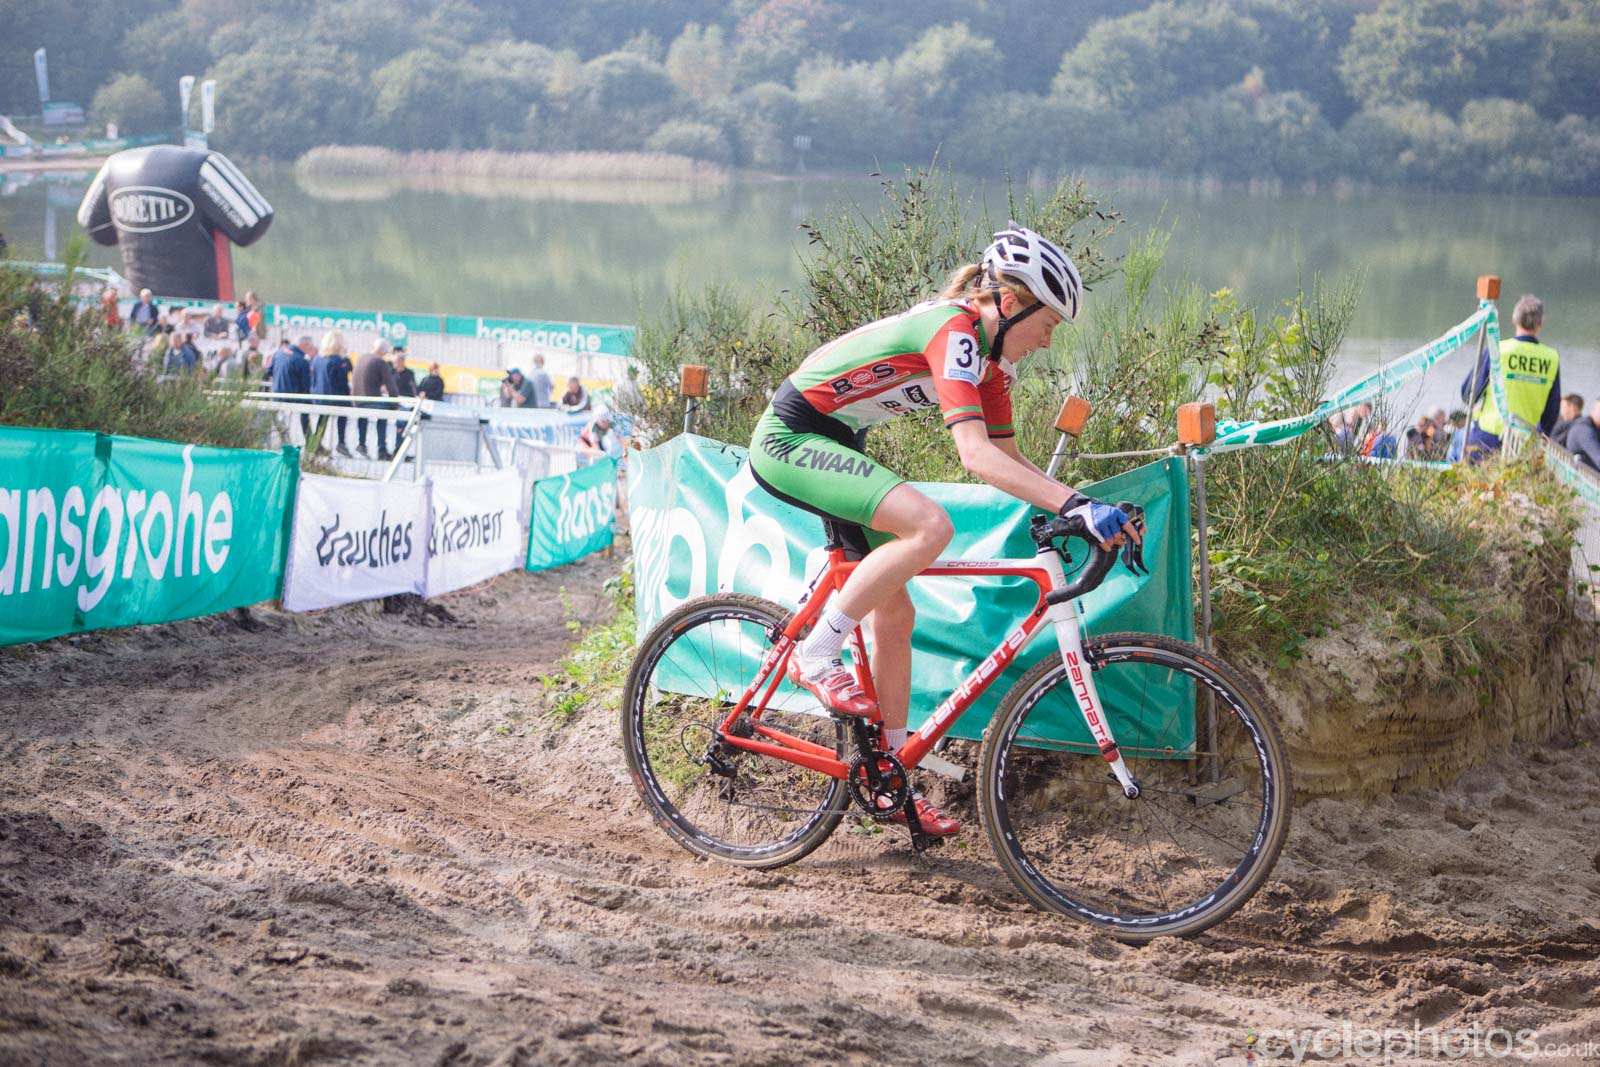 Rozemarijn Ammerlaan in the third lap of the women's Superprestige race in Gieten, The Netherlands. All rights reserved. �Balint Hamvas / Cyclephotos